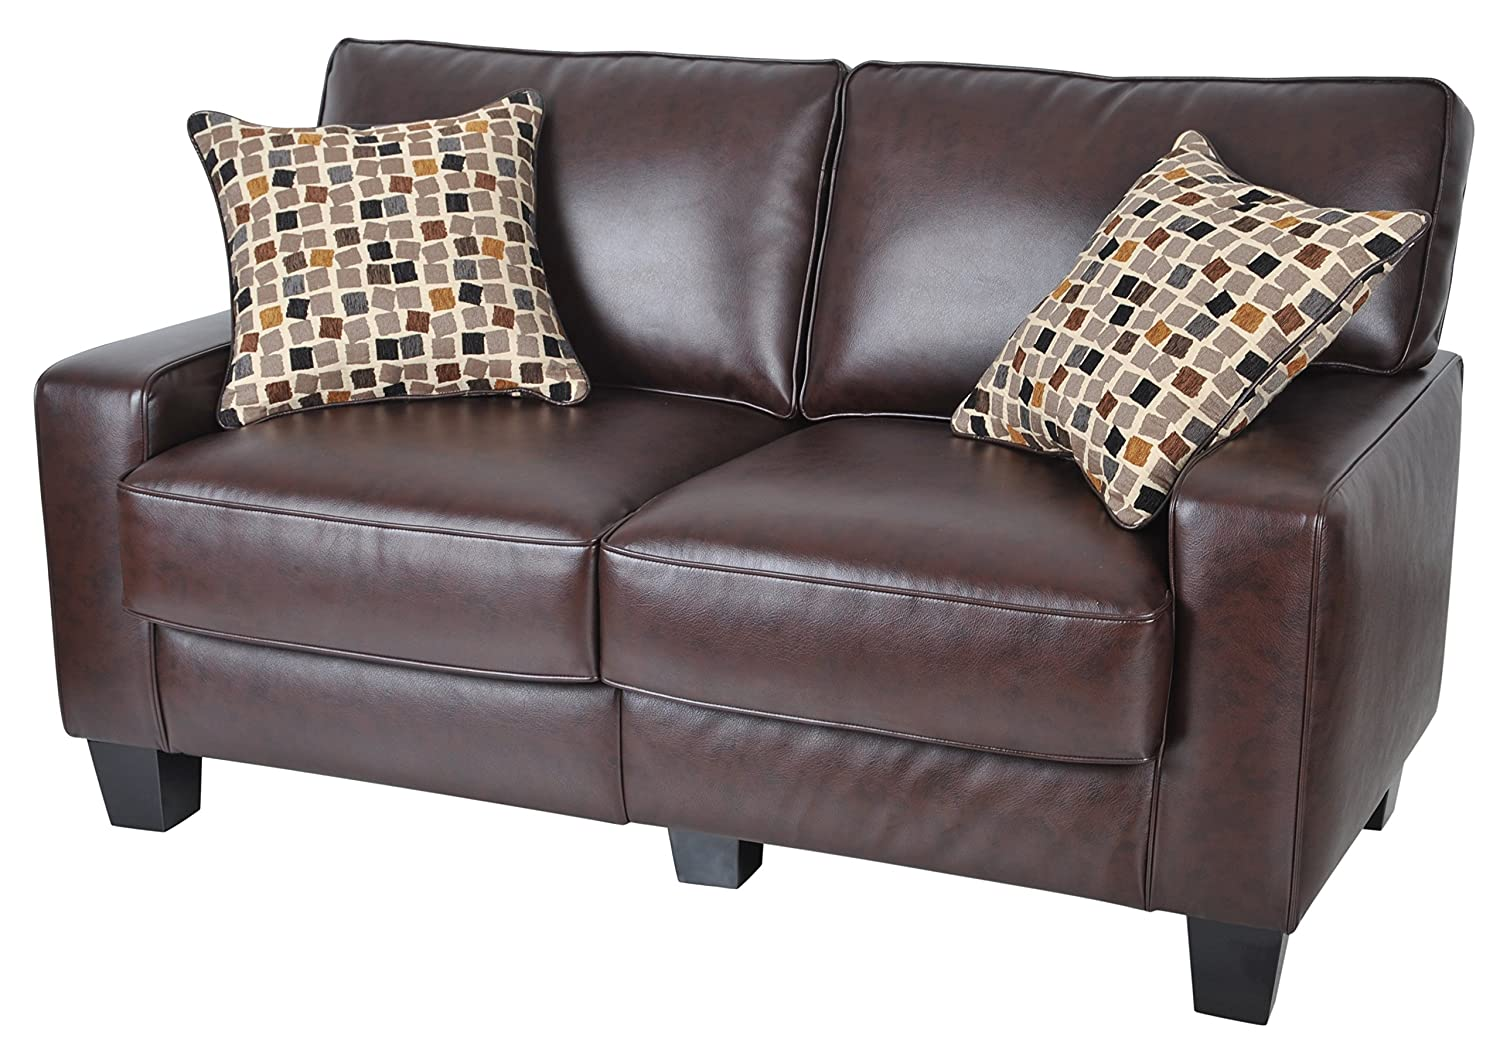 Amazon Com Serta Rta Palisades Collection 61 Bonded Leather  ~ Sofa And Loveseat Leather